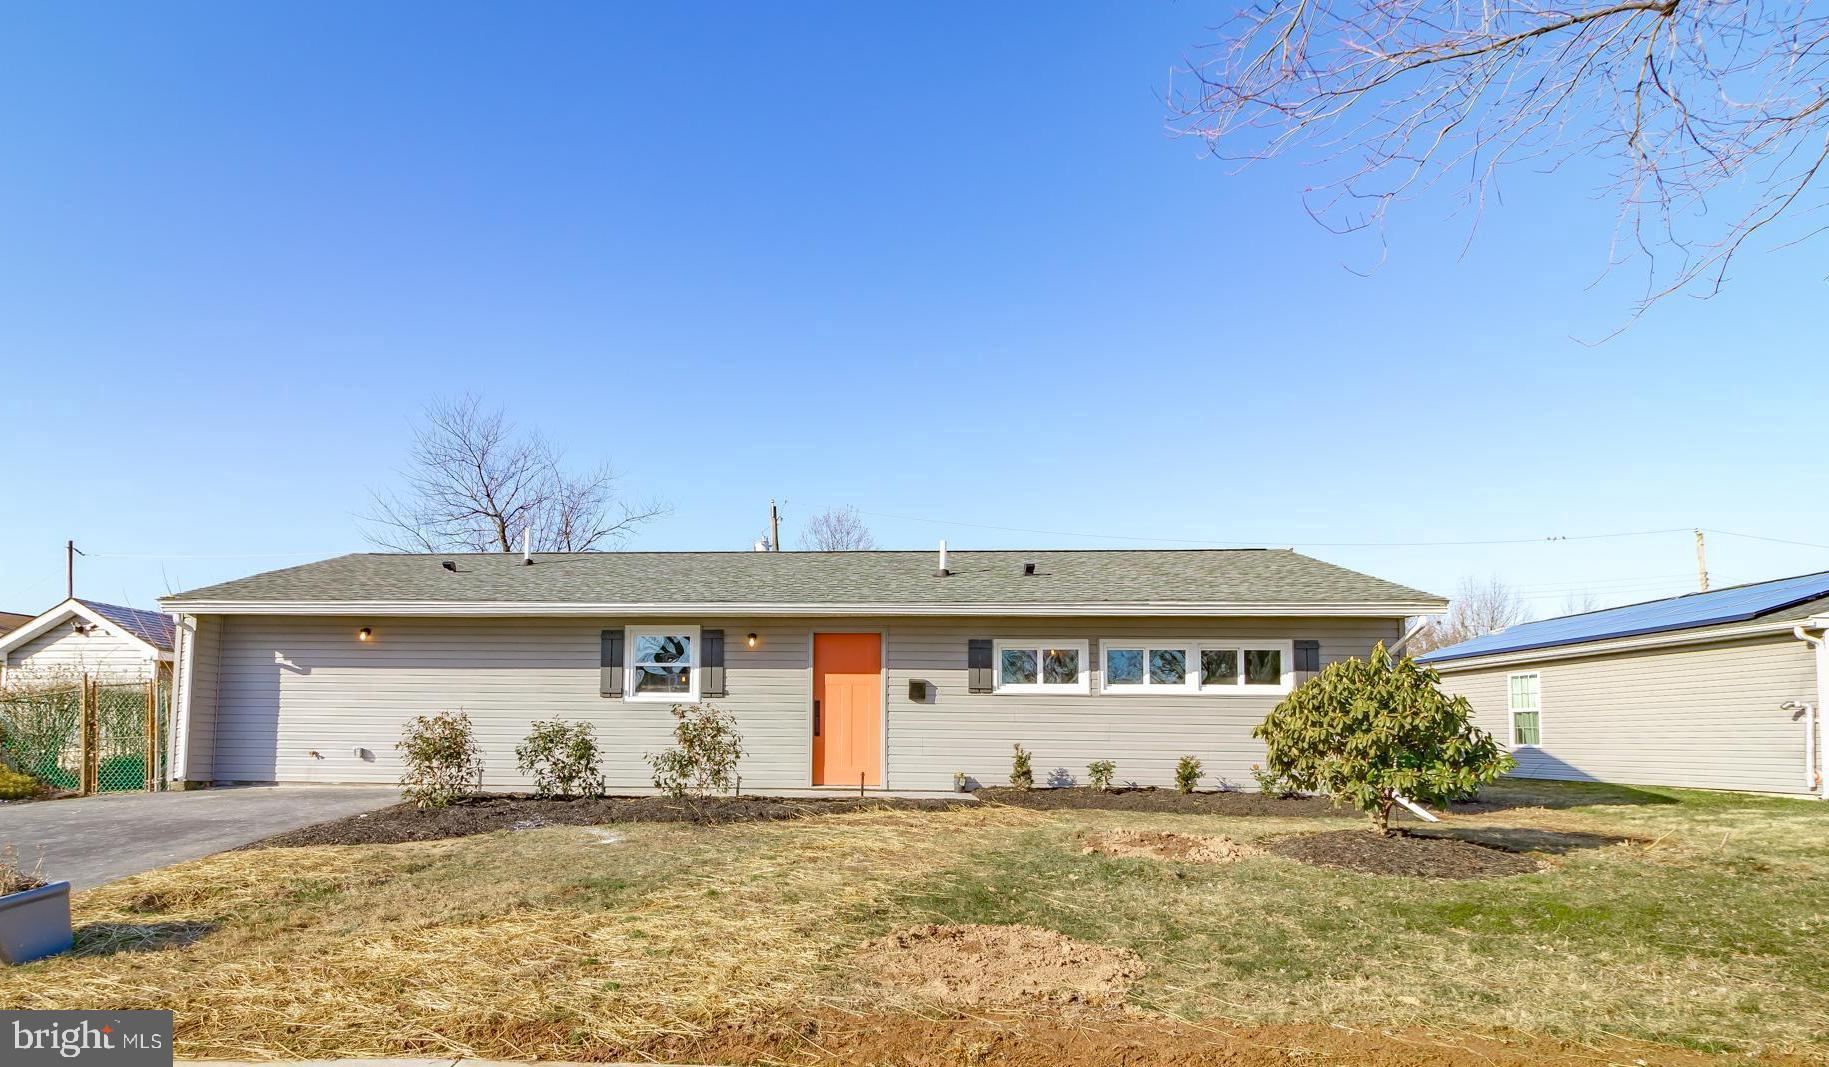 61 BASSWOOD ROAD, LEVITTOWN, PA 19057